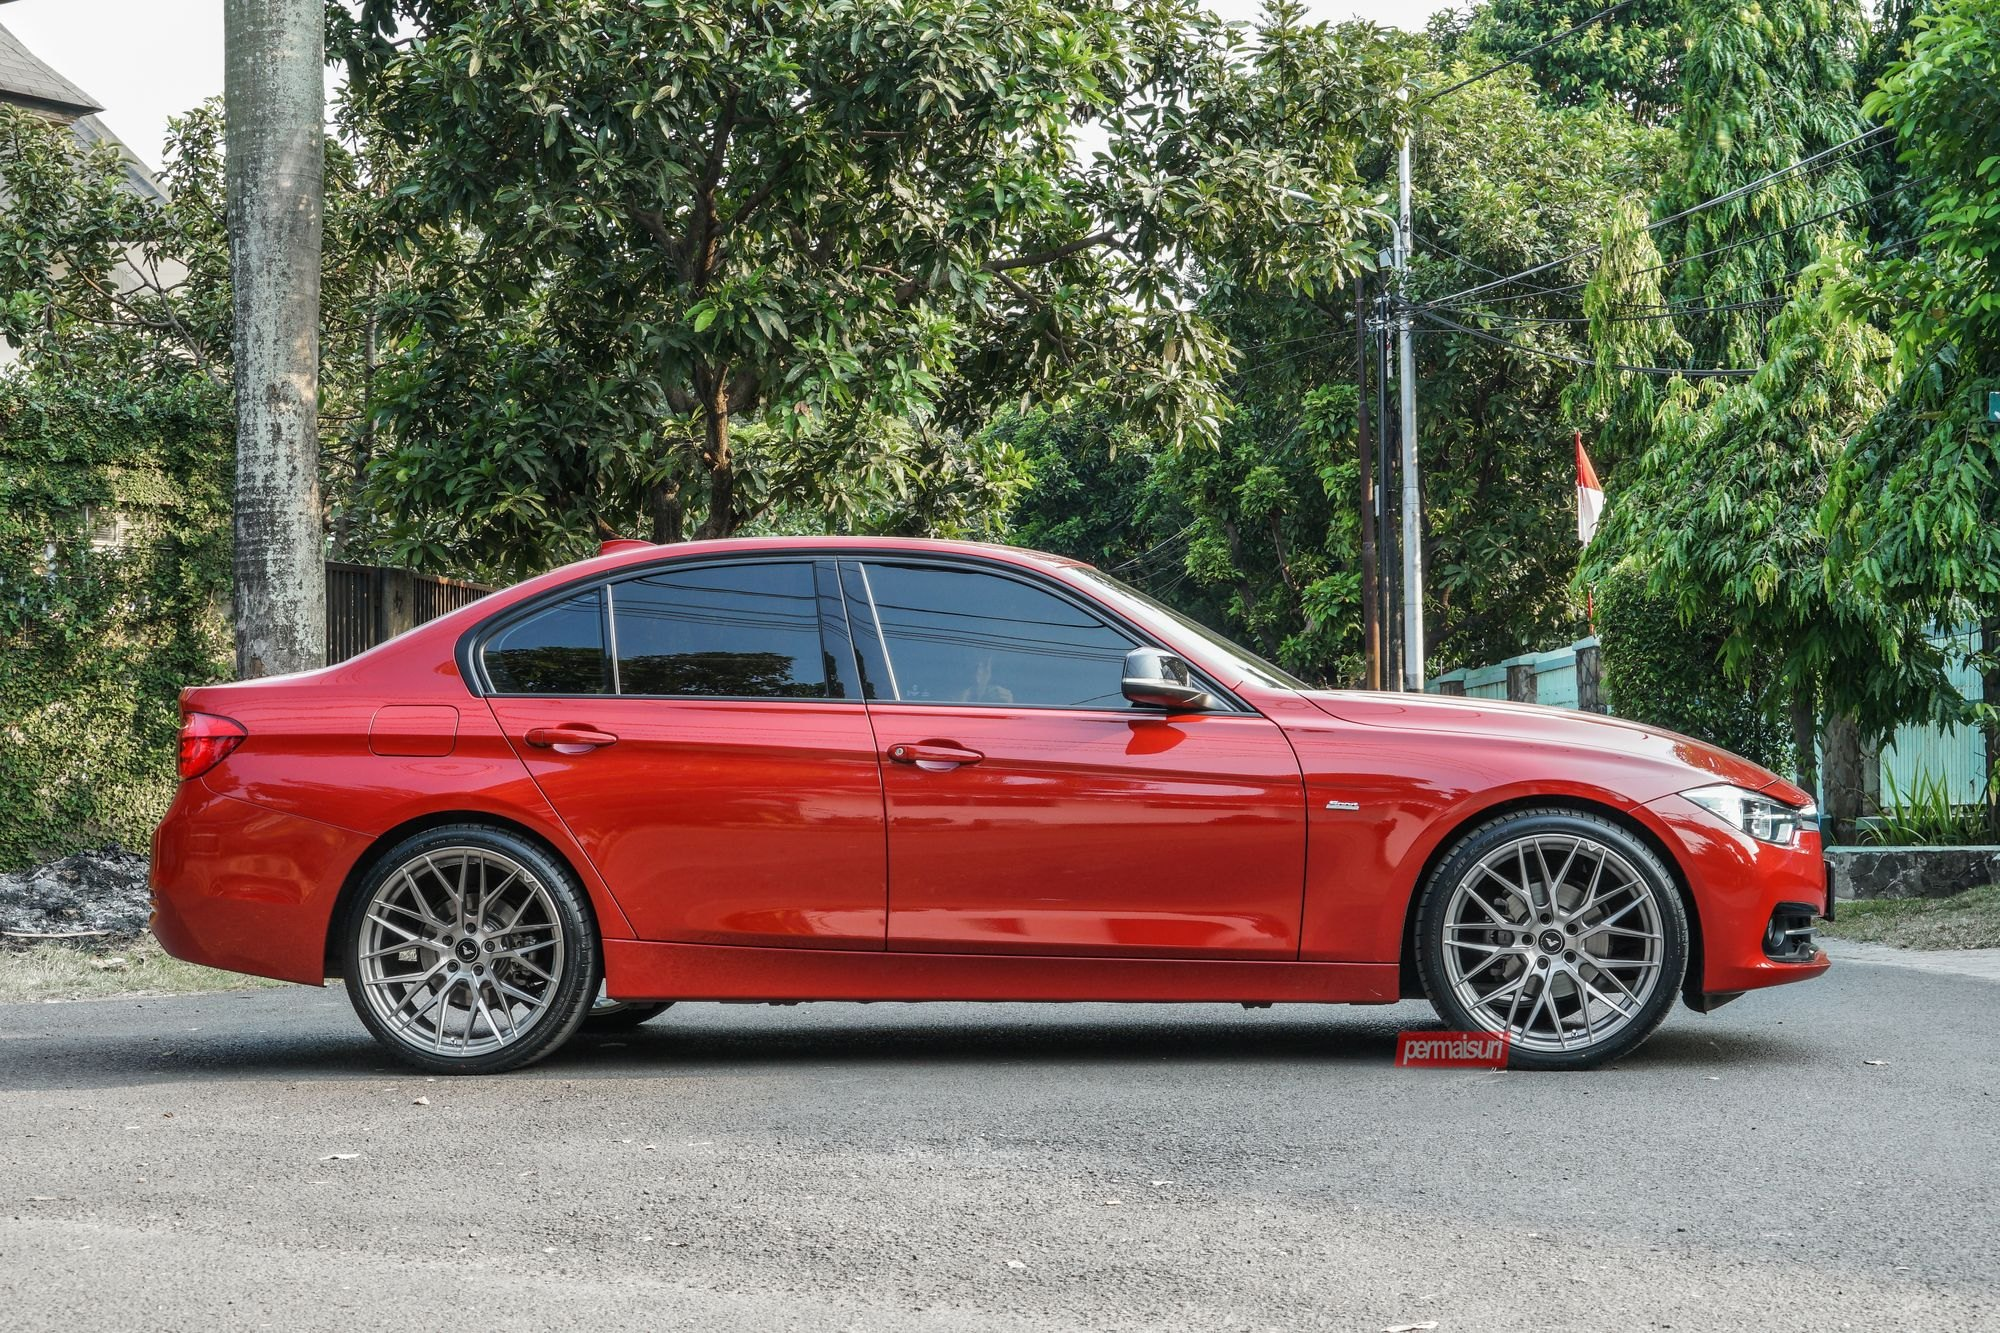 Reworked Face Of Red Bmw 3 Series With Front Bumper Featuring Custom